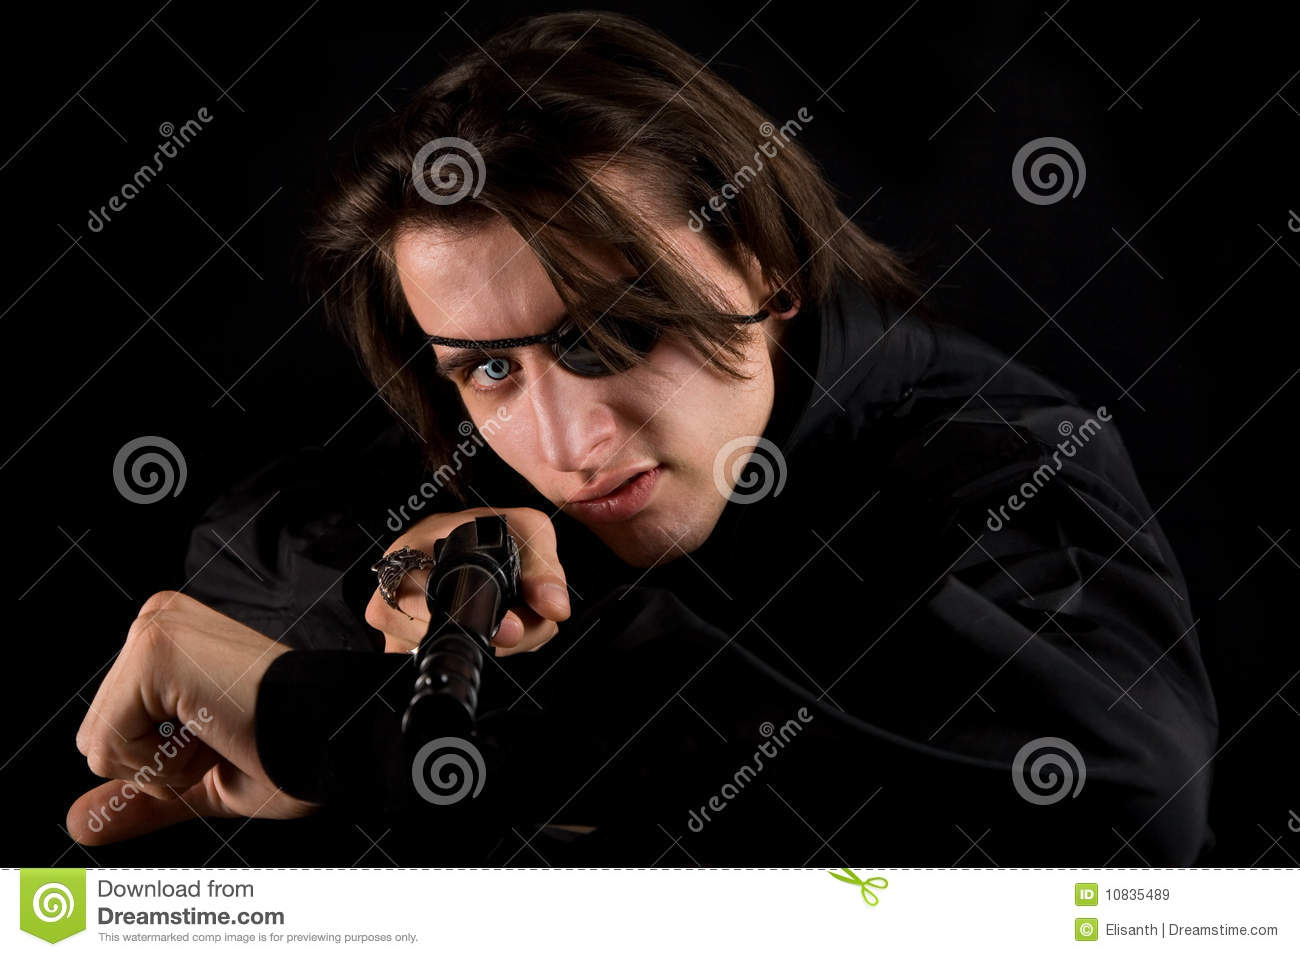 Handsome Pirate With Eye-patch And Gun Stock Photo - Image